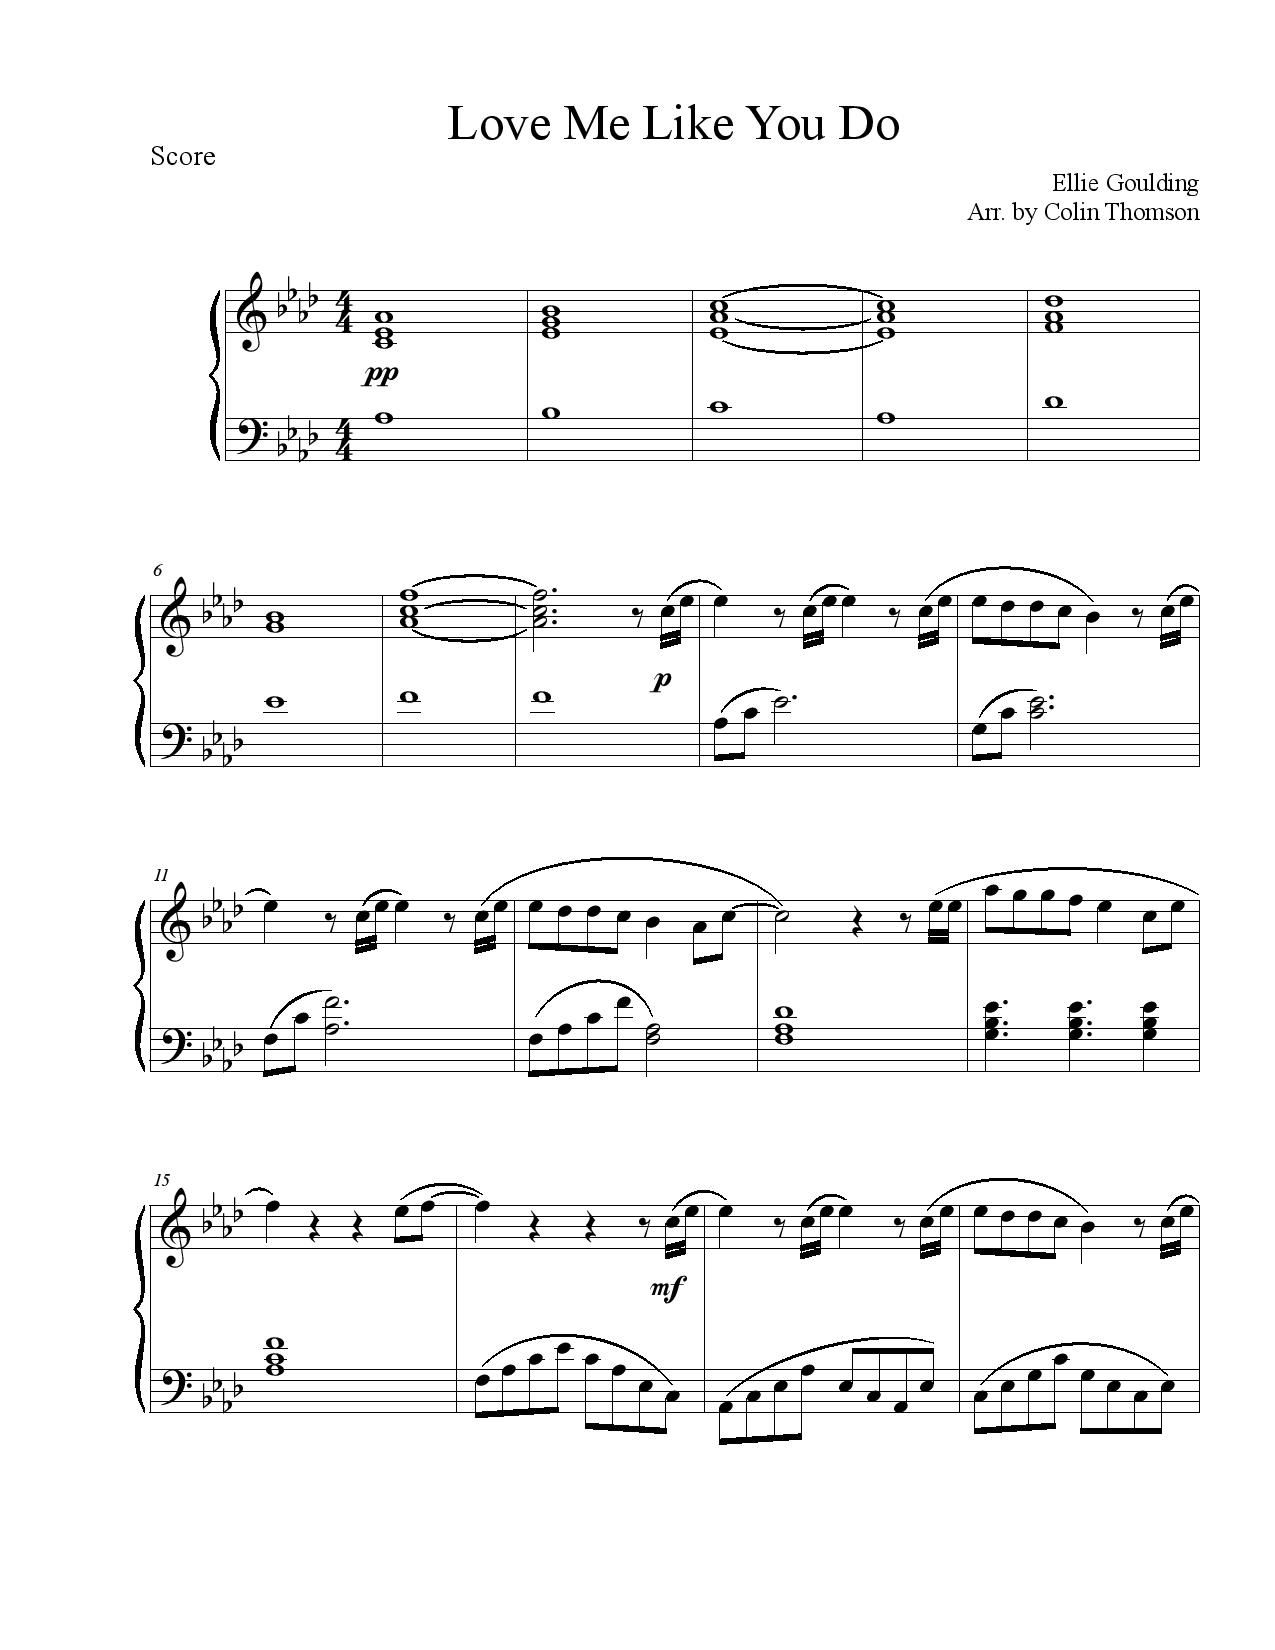 New free sheet music love me like you do by ellie goulding love me like you do by ellie goulding hexwebz Image collections